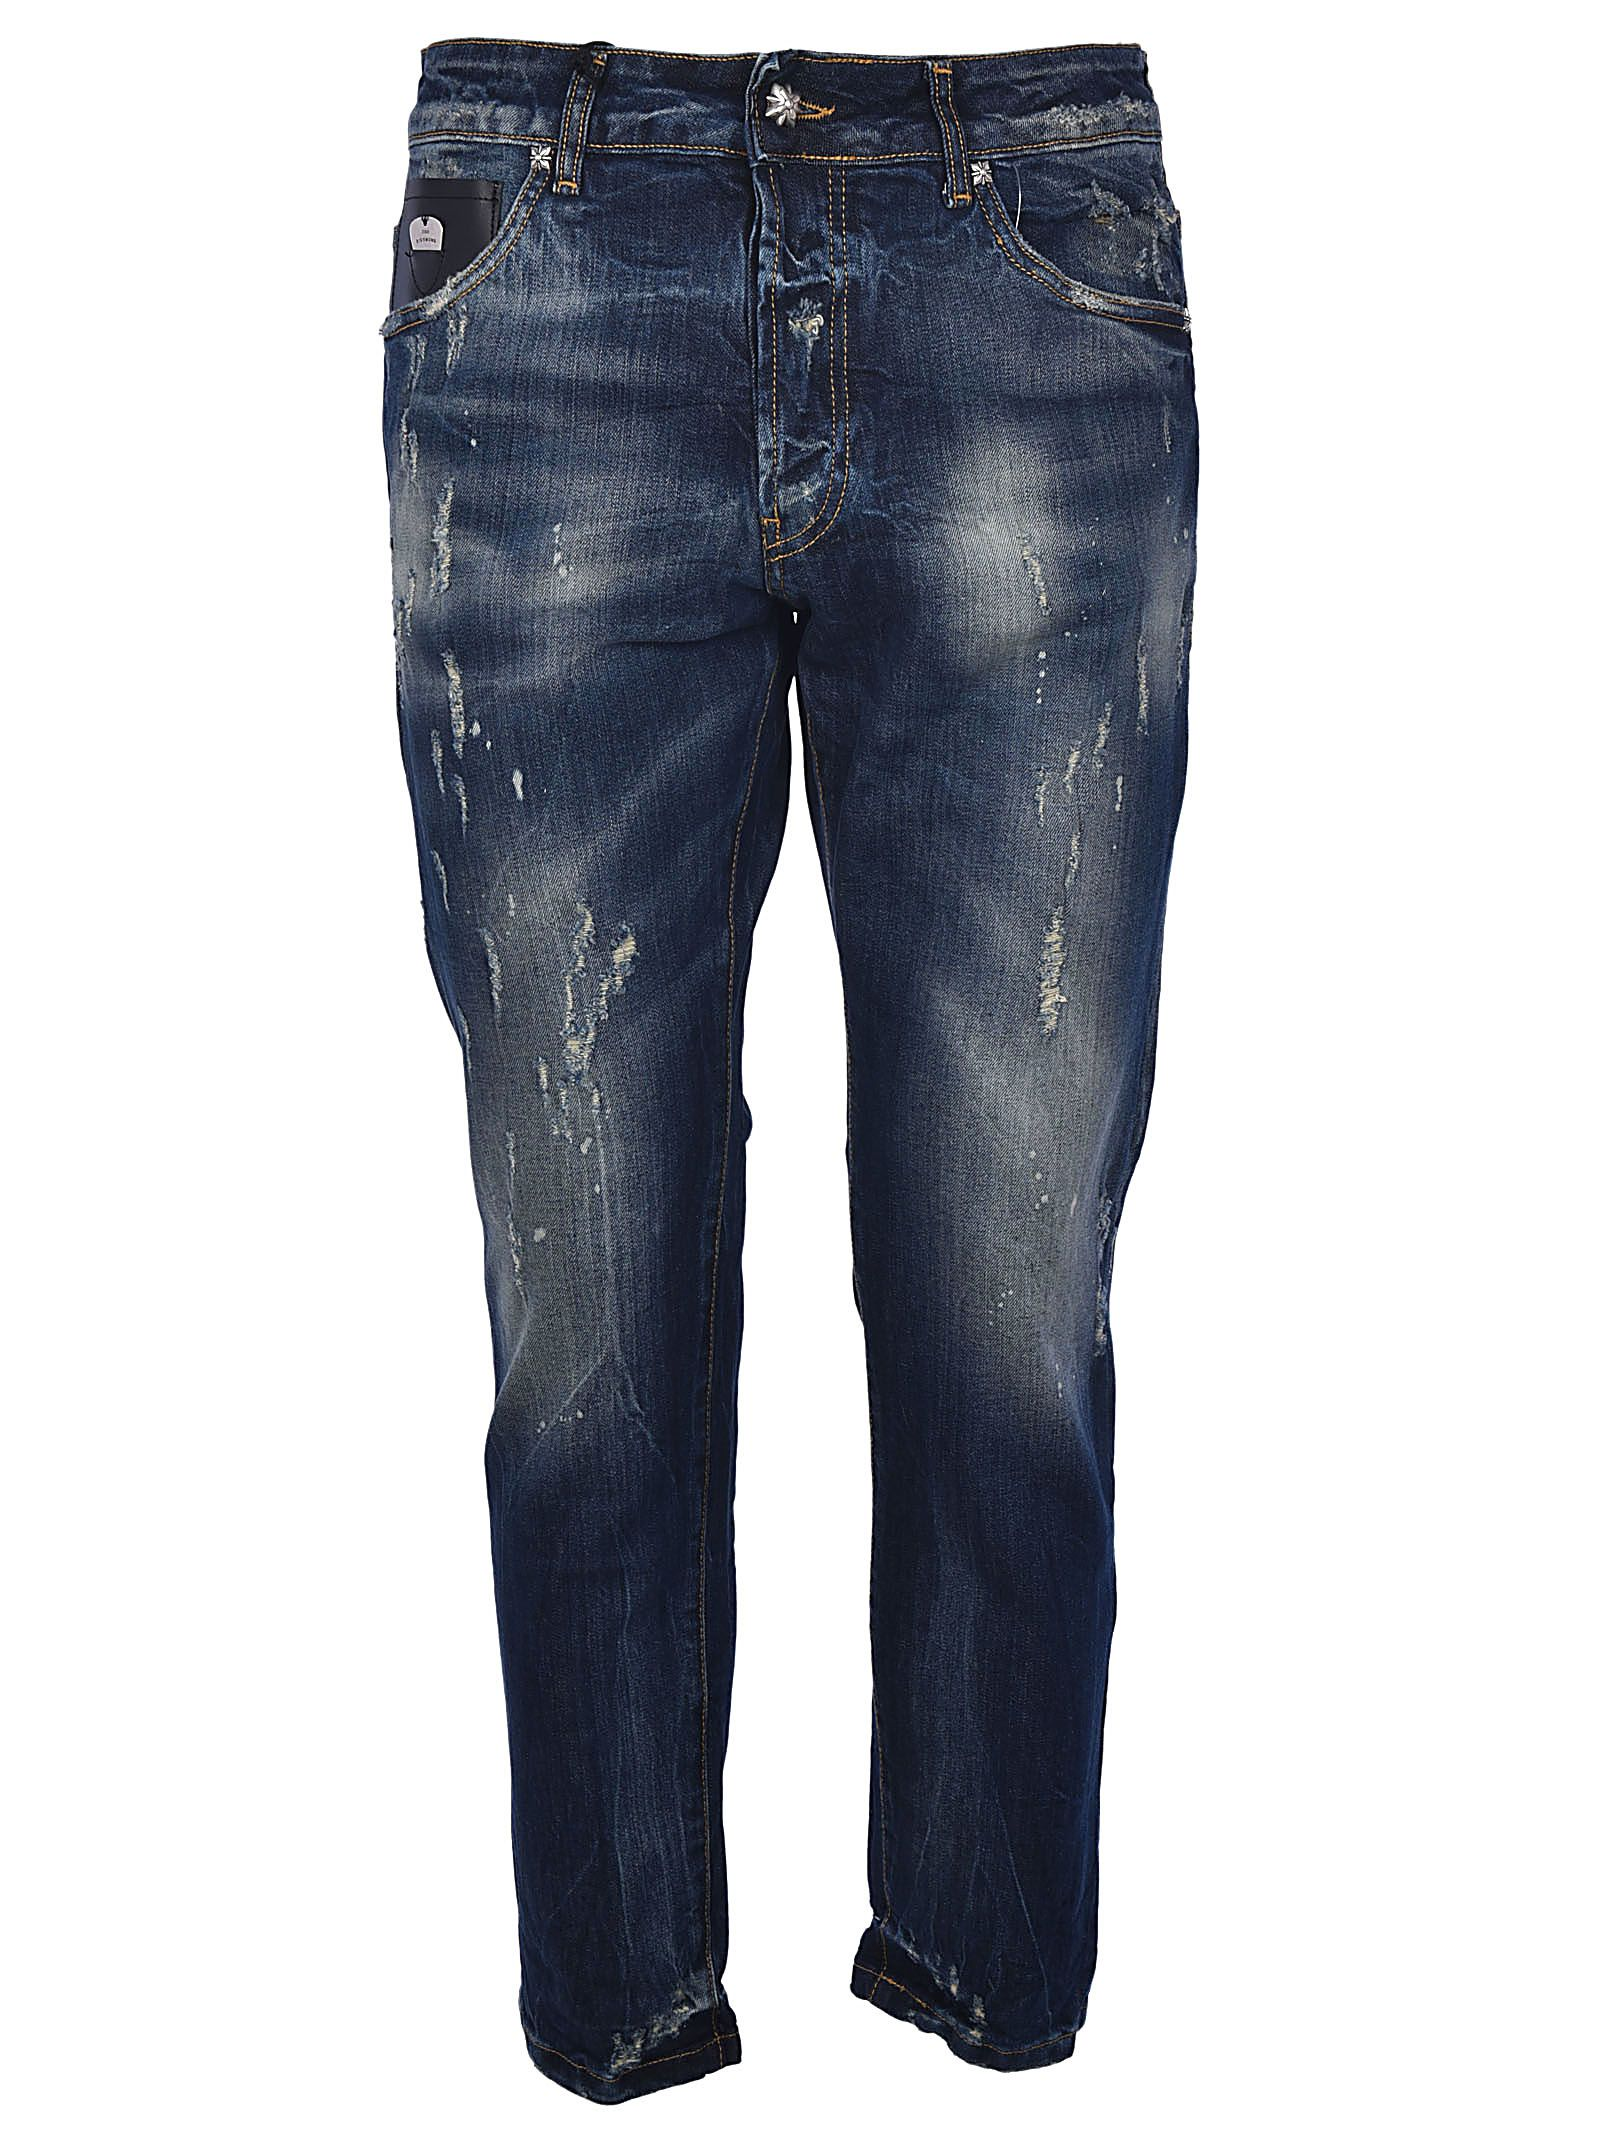 John Richmond Faded Skinny Jeans